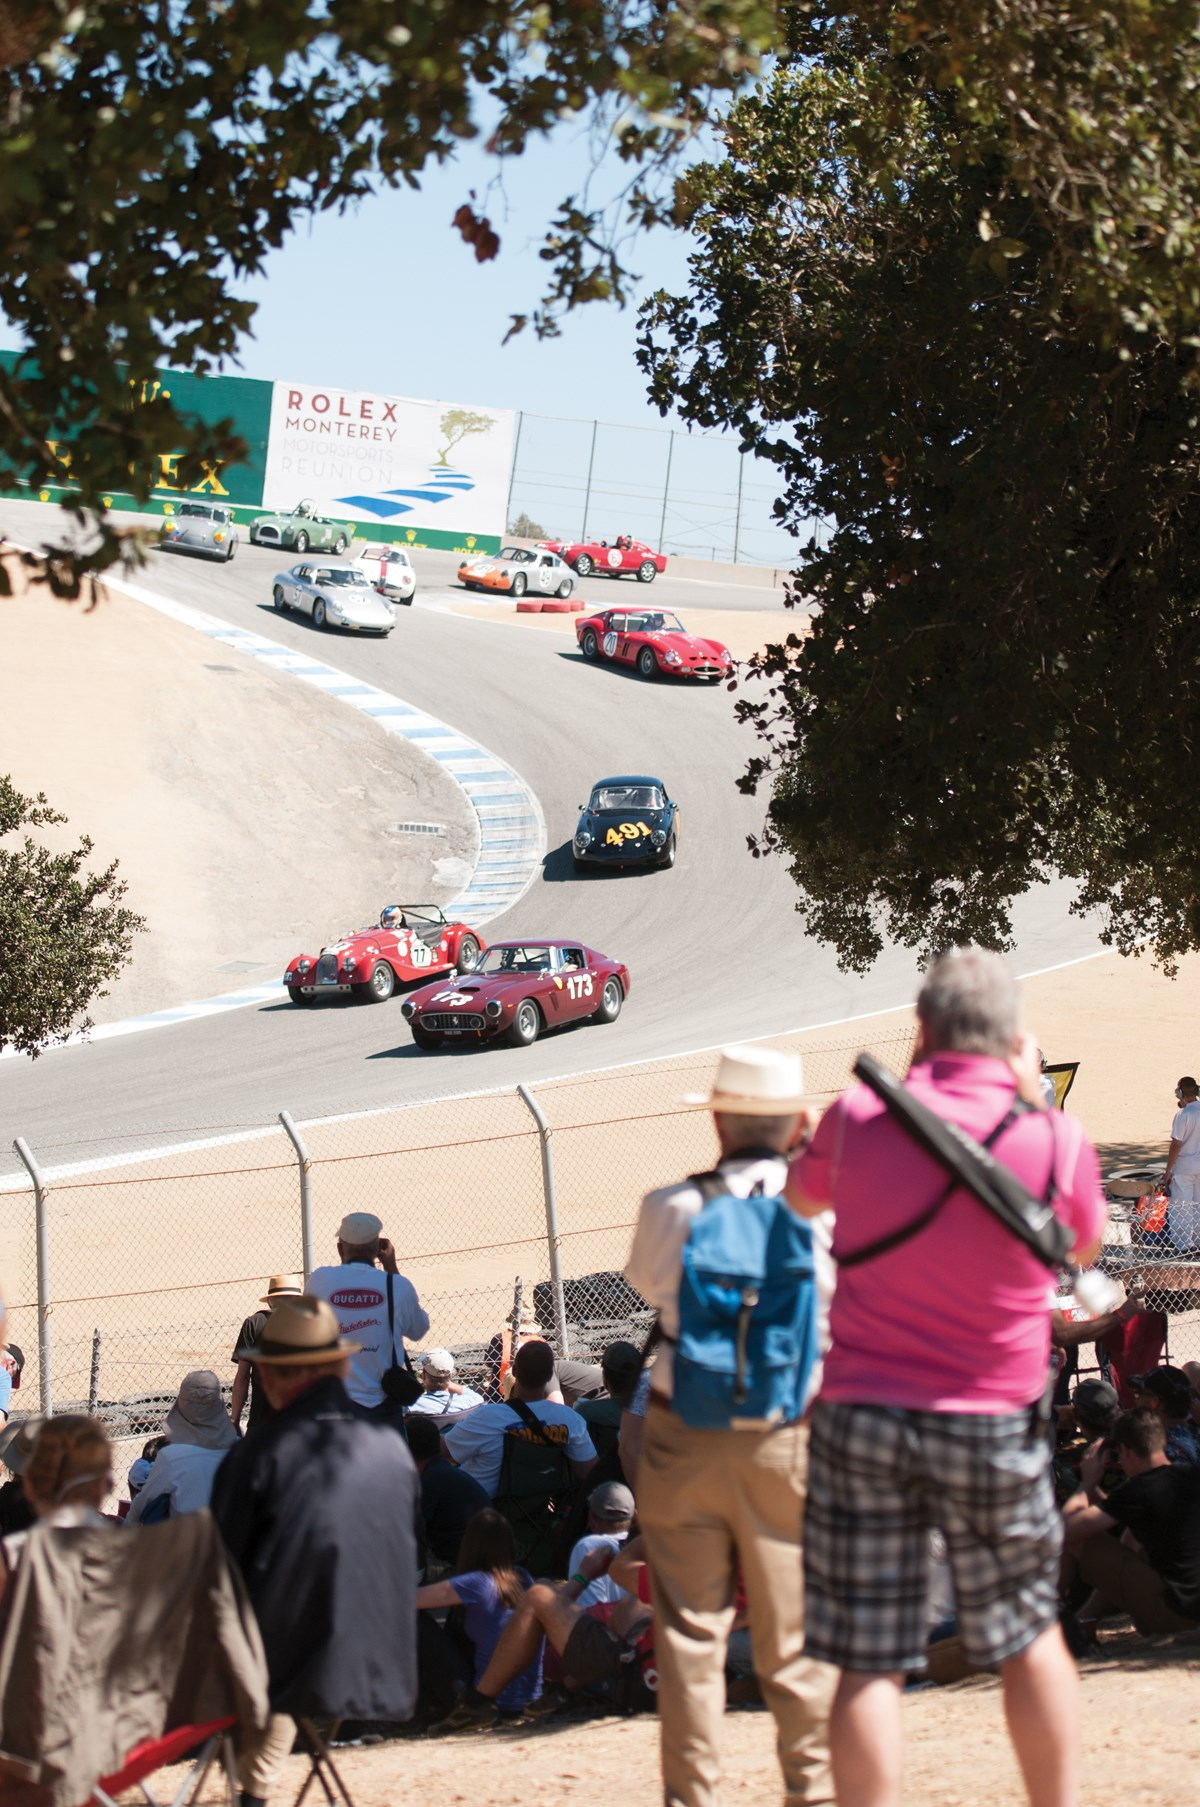 The Rolex Monterey Motorsports Reunion held at Laguna Seca.